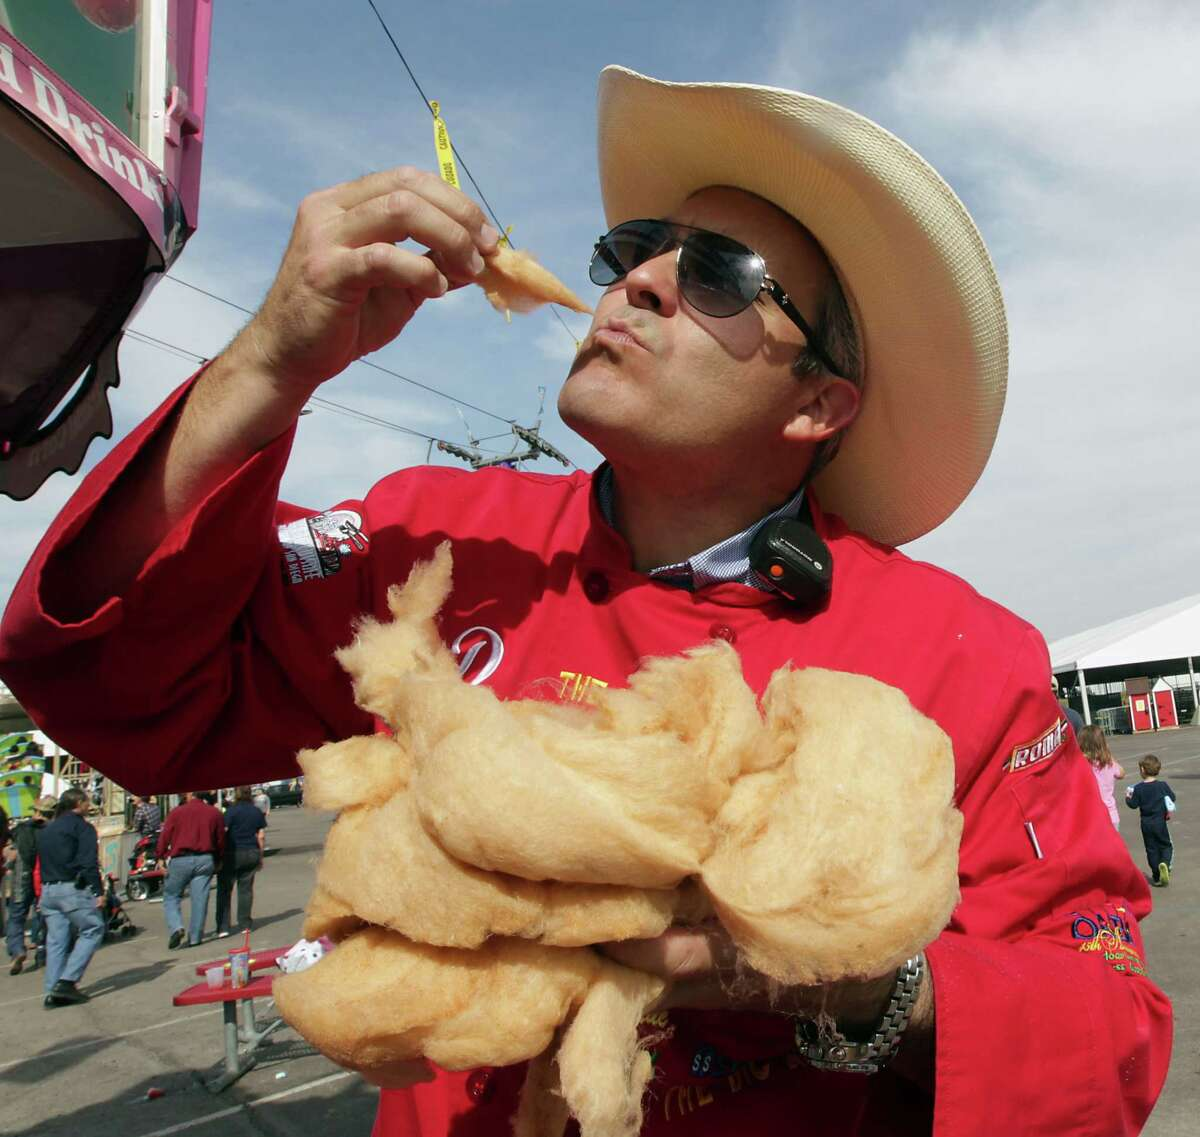 """RSC's Dominic """"The Midway Gourmet"""" Palmieri takes a bite of the Bacon Cotton Candy at the Houston Livestock Show and Rodeo Carnival Saturday, Feb. 23, 2013, in Houston. ( James Nielsen / Houston Chronicle )"""